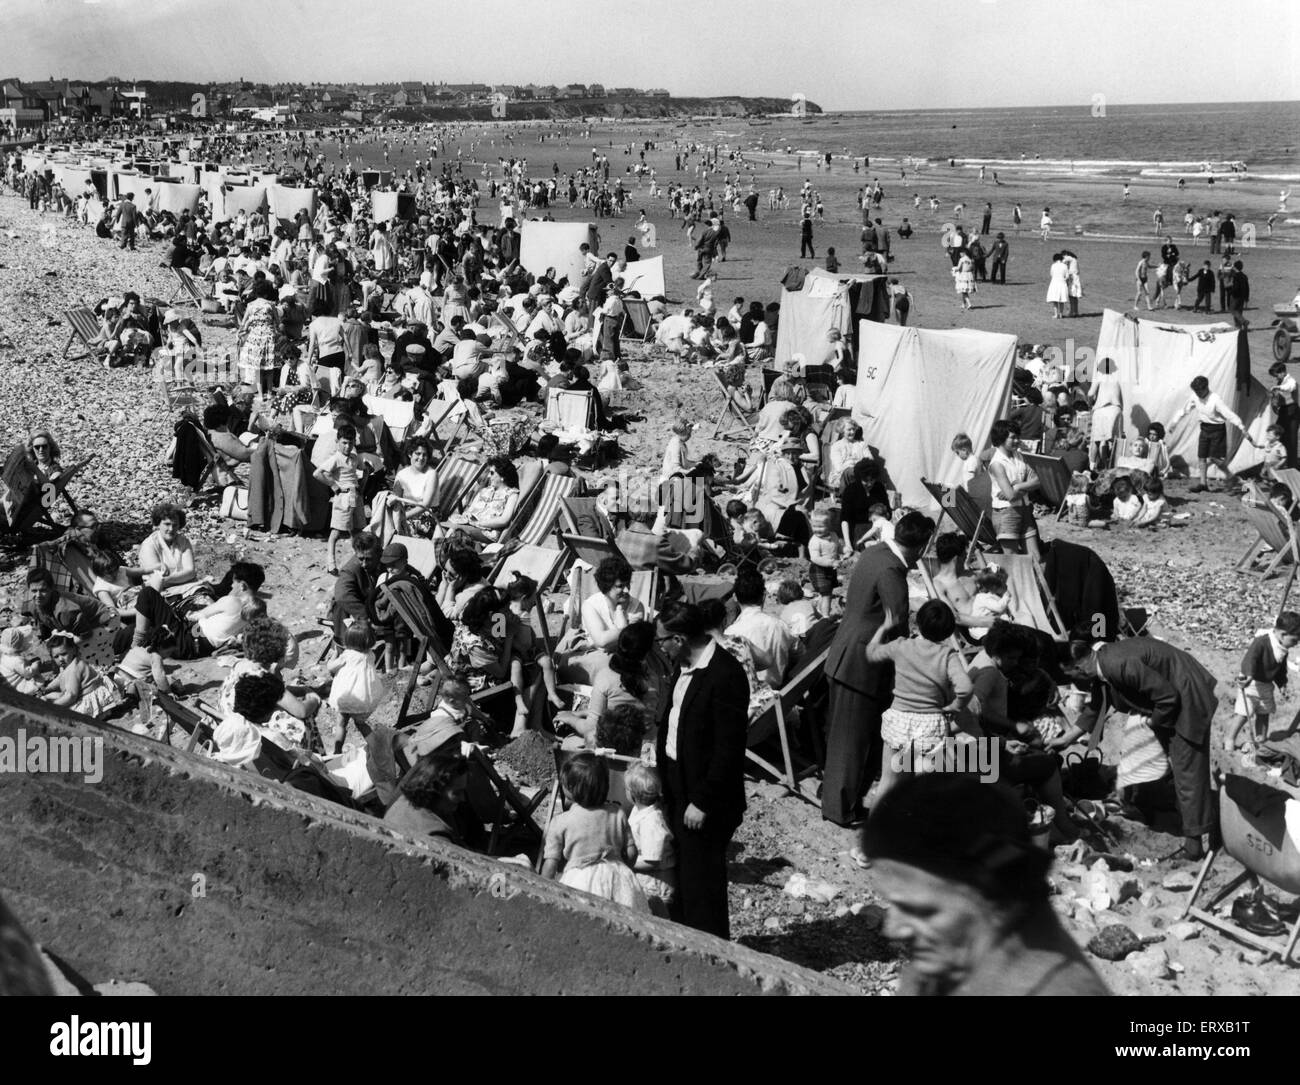 Holidaymakers on Saltburn Beach. 31st May 1960. - Stock Image